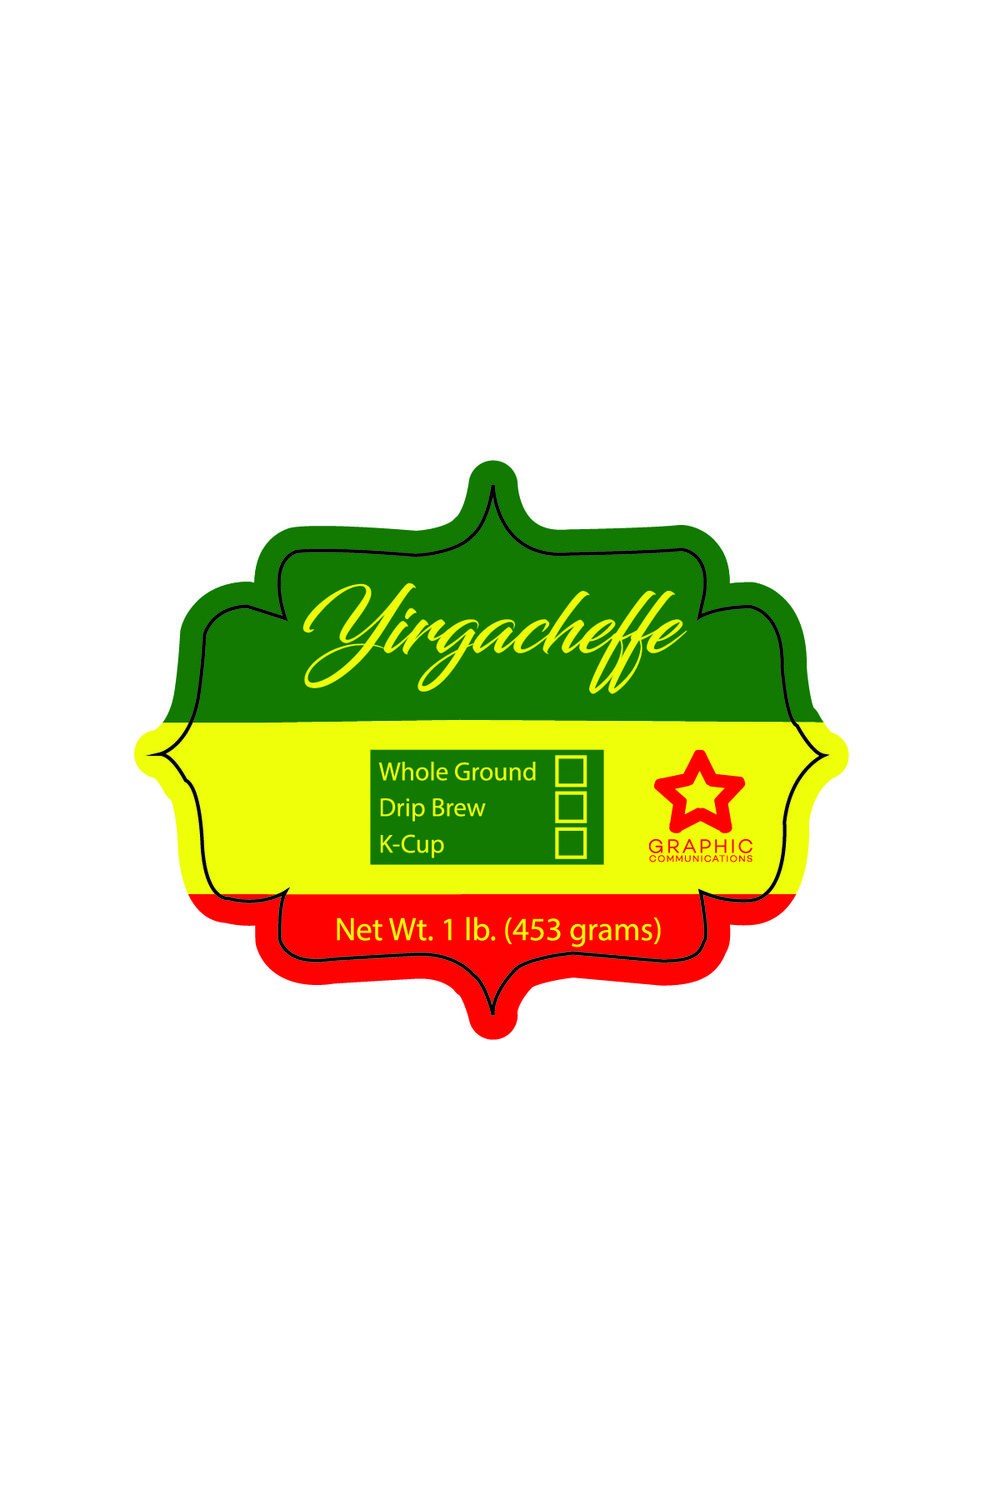 Yirgacheffe Coffee Label_Champagne-01.jpg